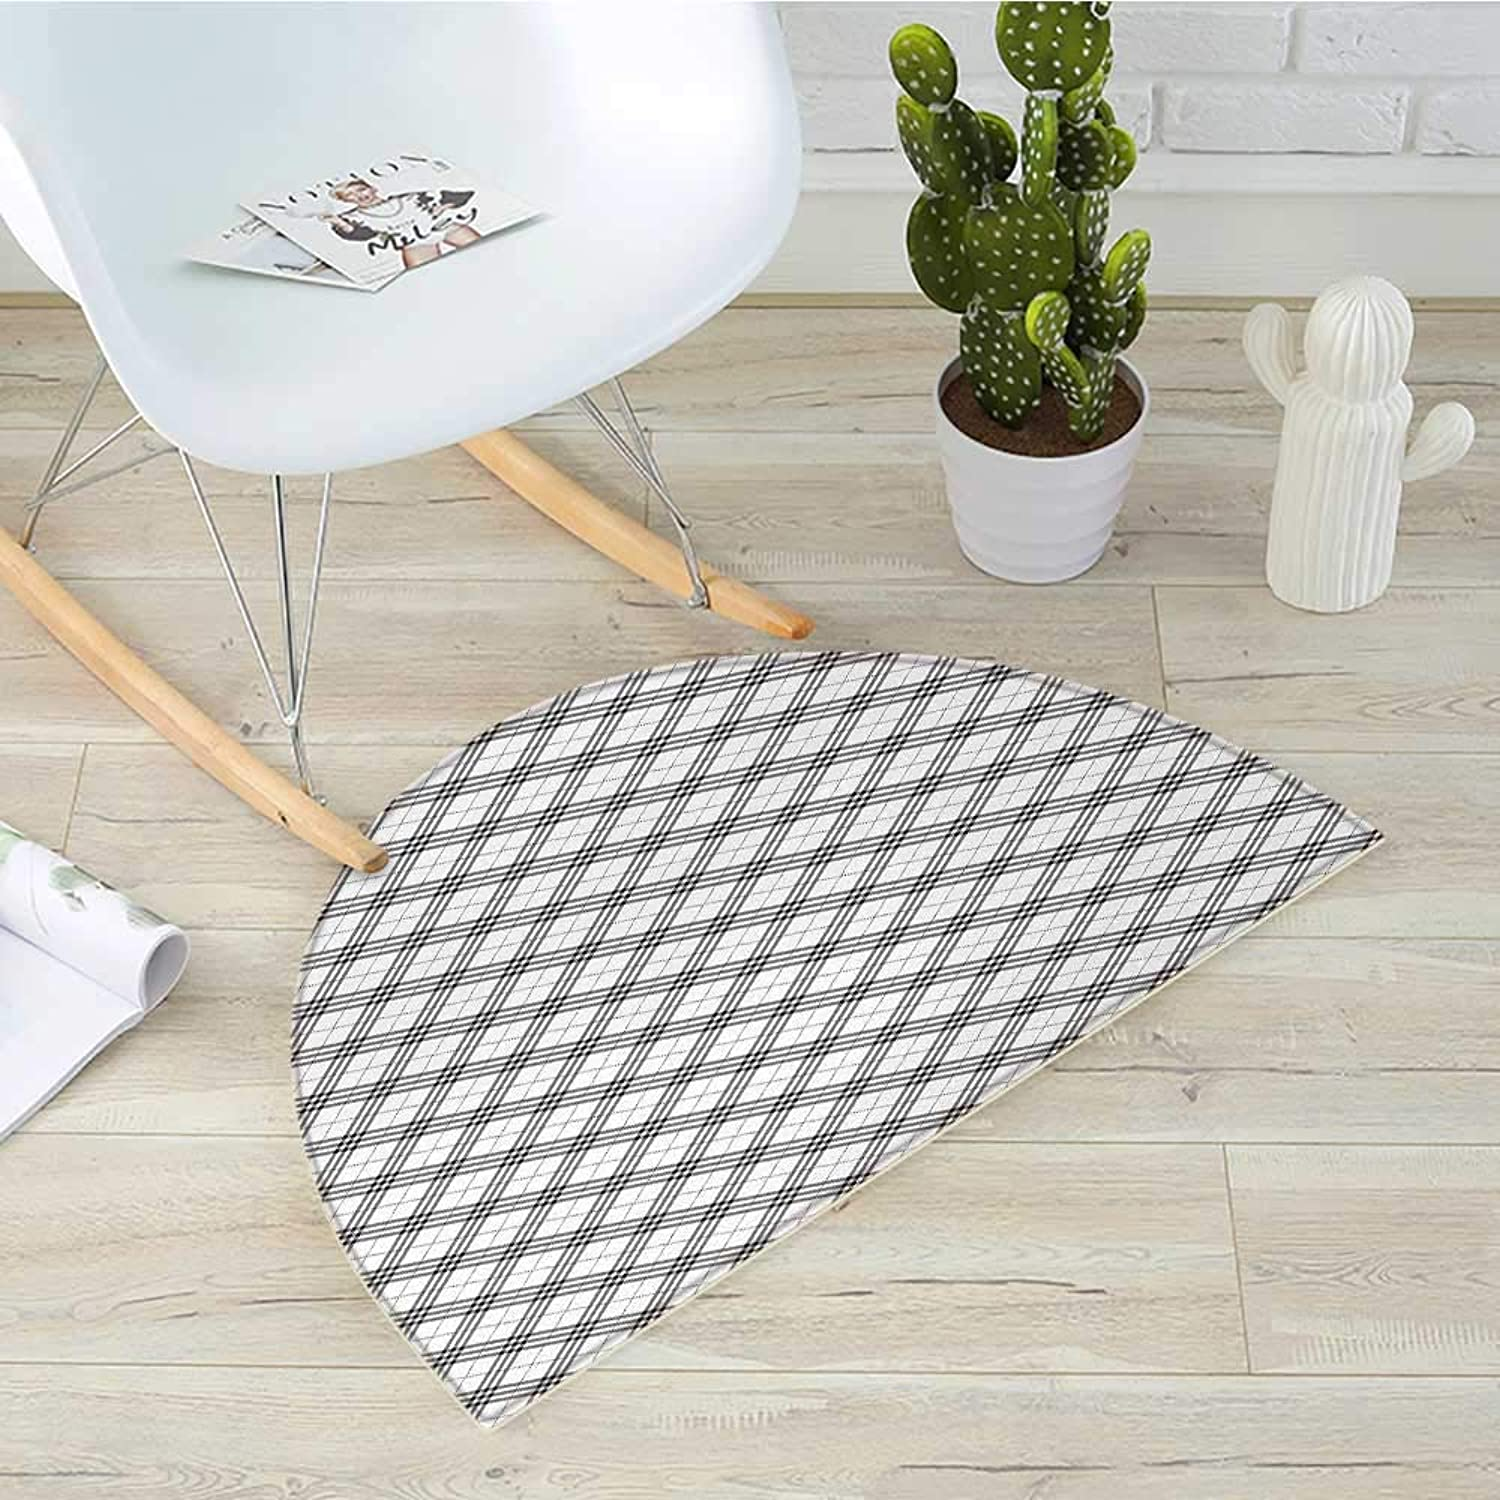 Plaid Semicircle Doormat Monochromatic Diagonal Pattern with Checks and Stripes Dashed Lines Celtic Classic Halfmoon doormats H 31.5  xD 47.2  Black White